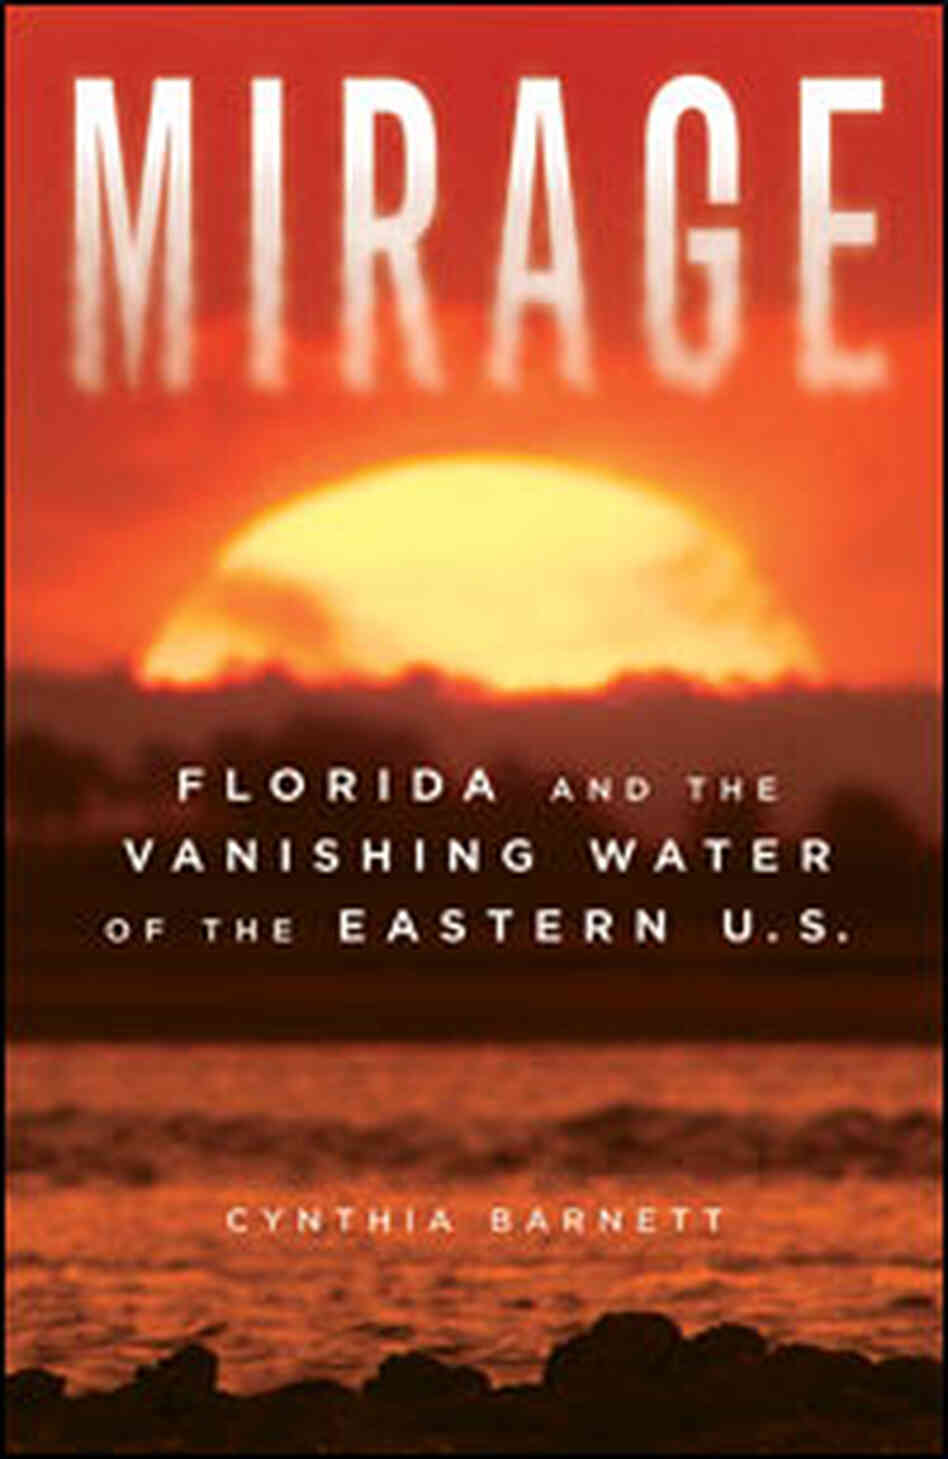 Book Cover: 'Mirage: Florida and the Vanishing Water of the Eastern U.S.'